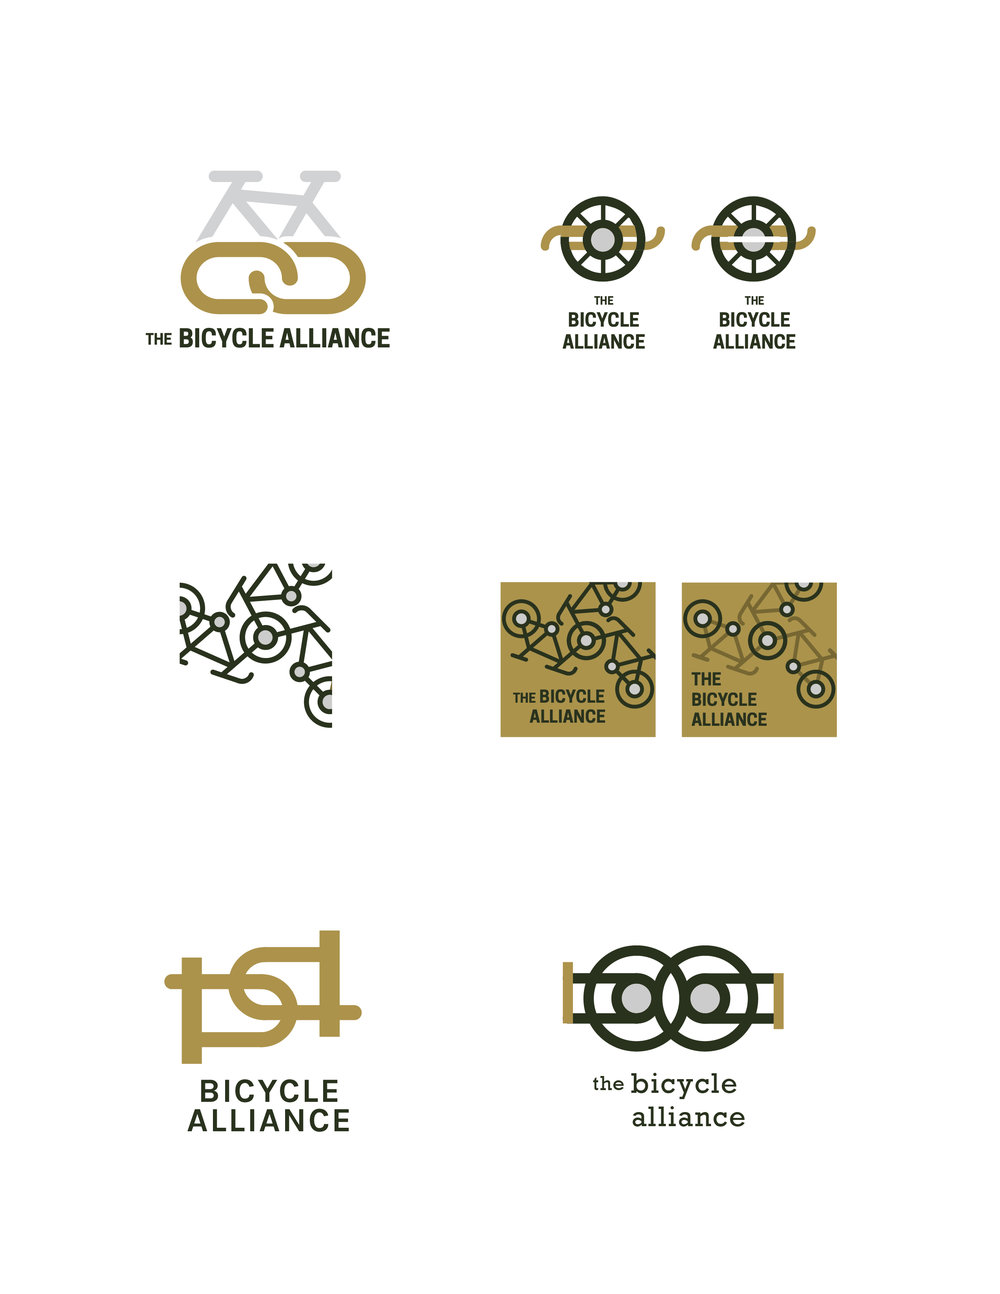 Initial concepts for the logo